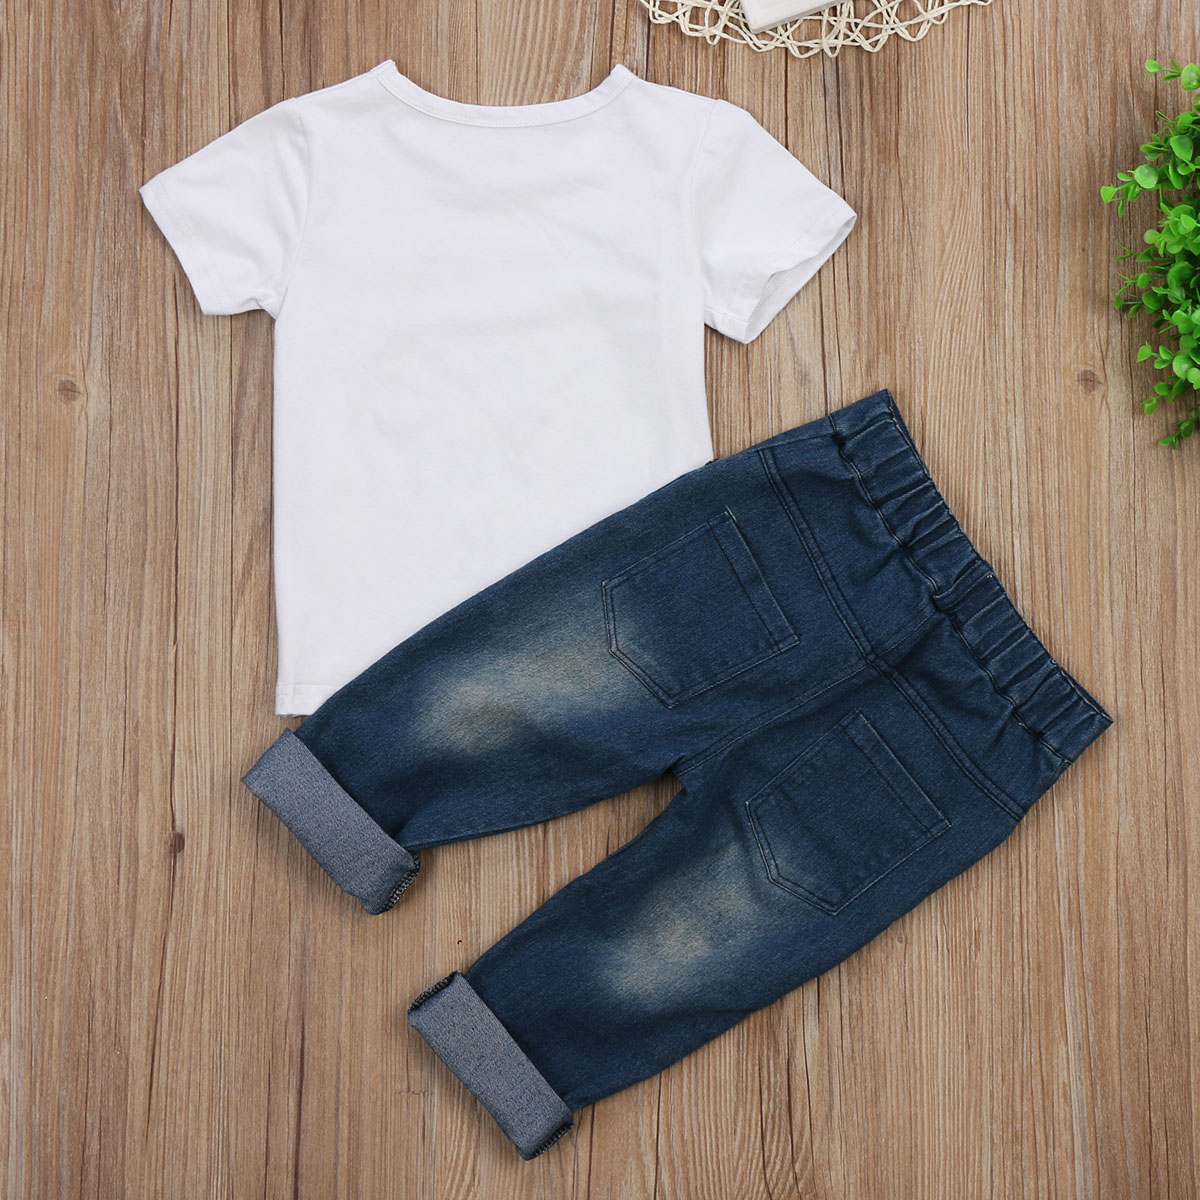 2017 Hot Toddler Kids Boys Outfits Short Sleeves Summer Clothes Tops Mom N Bab Long Pants Blue Polkadot Size 4t T Shirt Demin Jeans Denim 2pcs Set In Clothing Sets From Mother